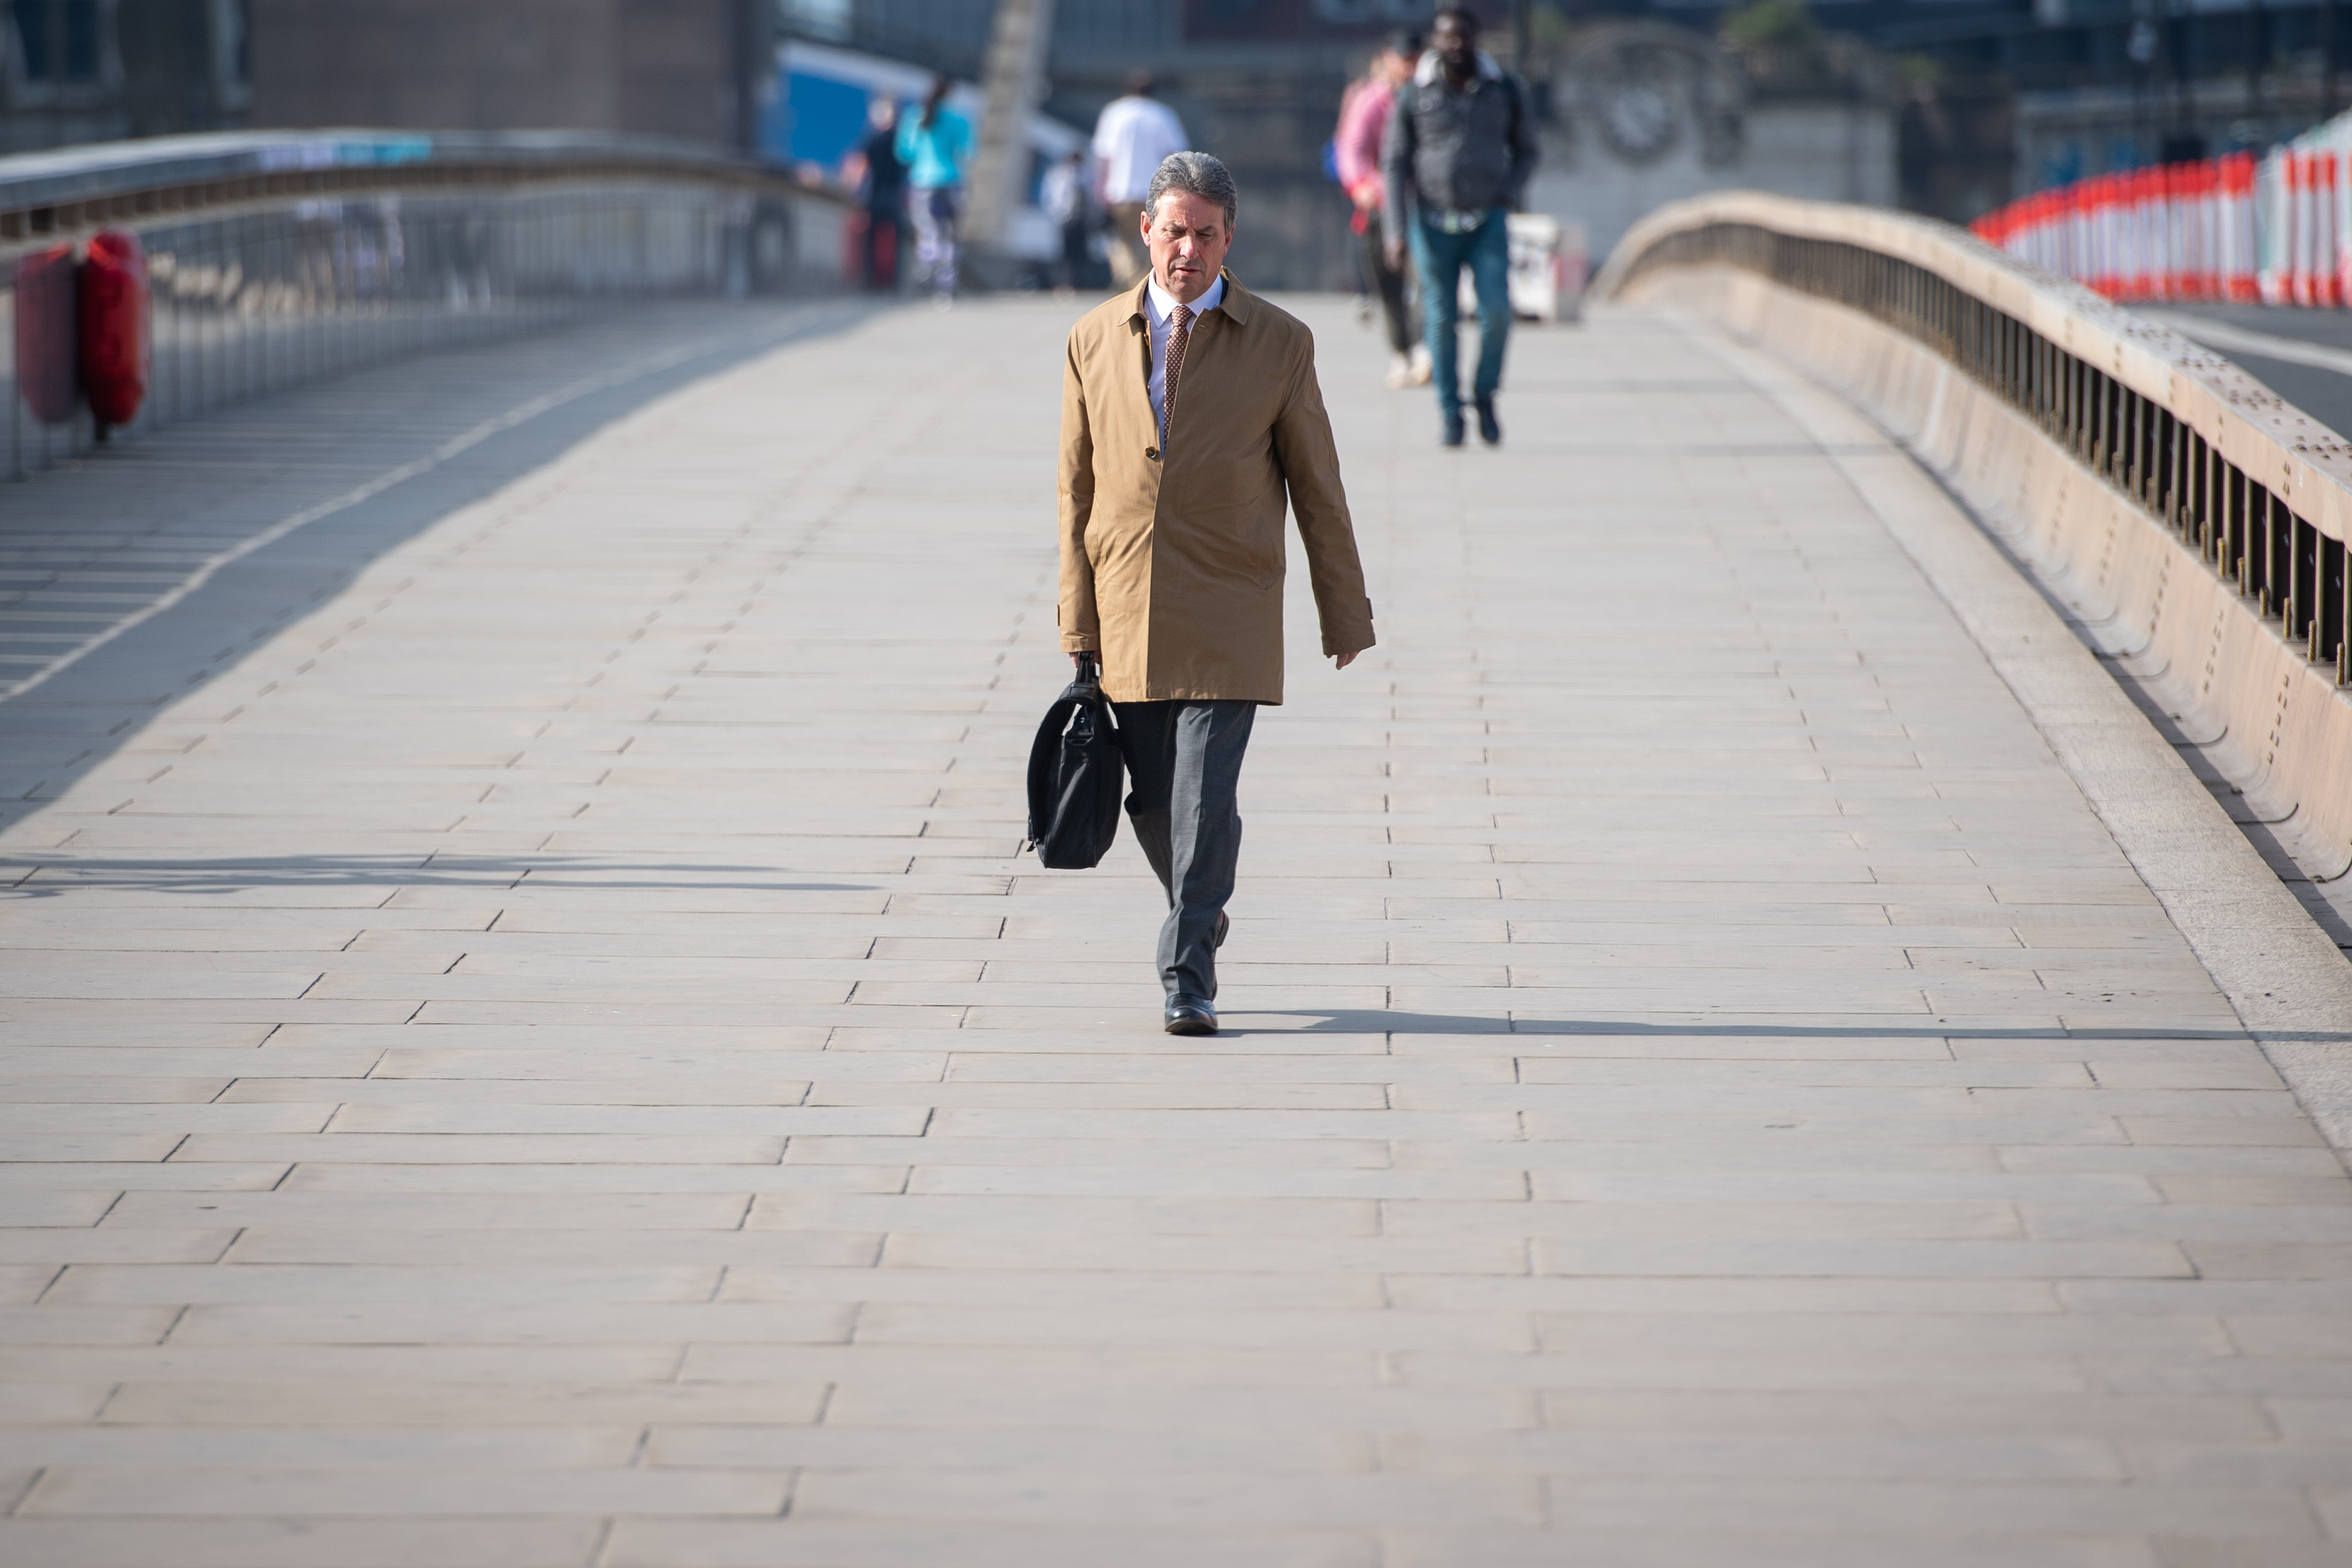 A man walks over London Bridge towards the City financial district during what would normally be morning rush hour, as the UK continues in lockdown to help curb the spread of the coronavirus.